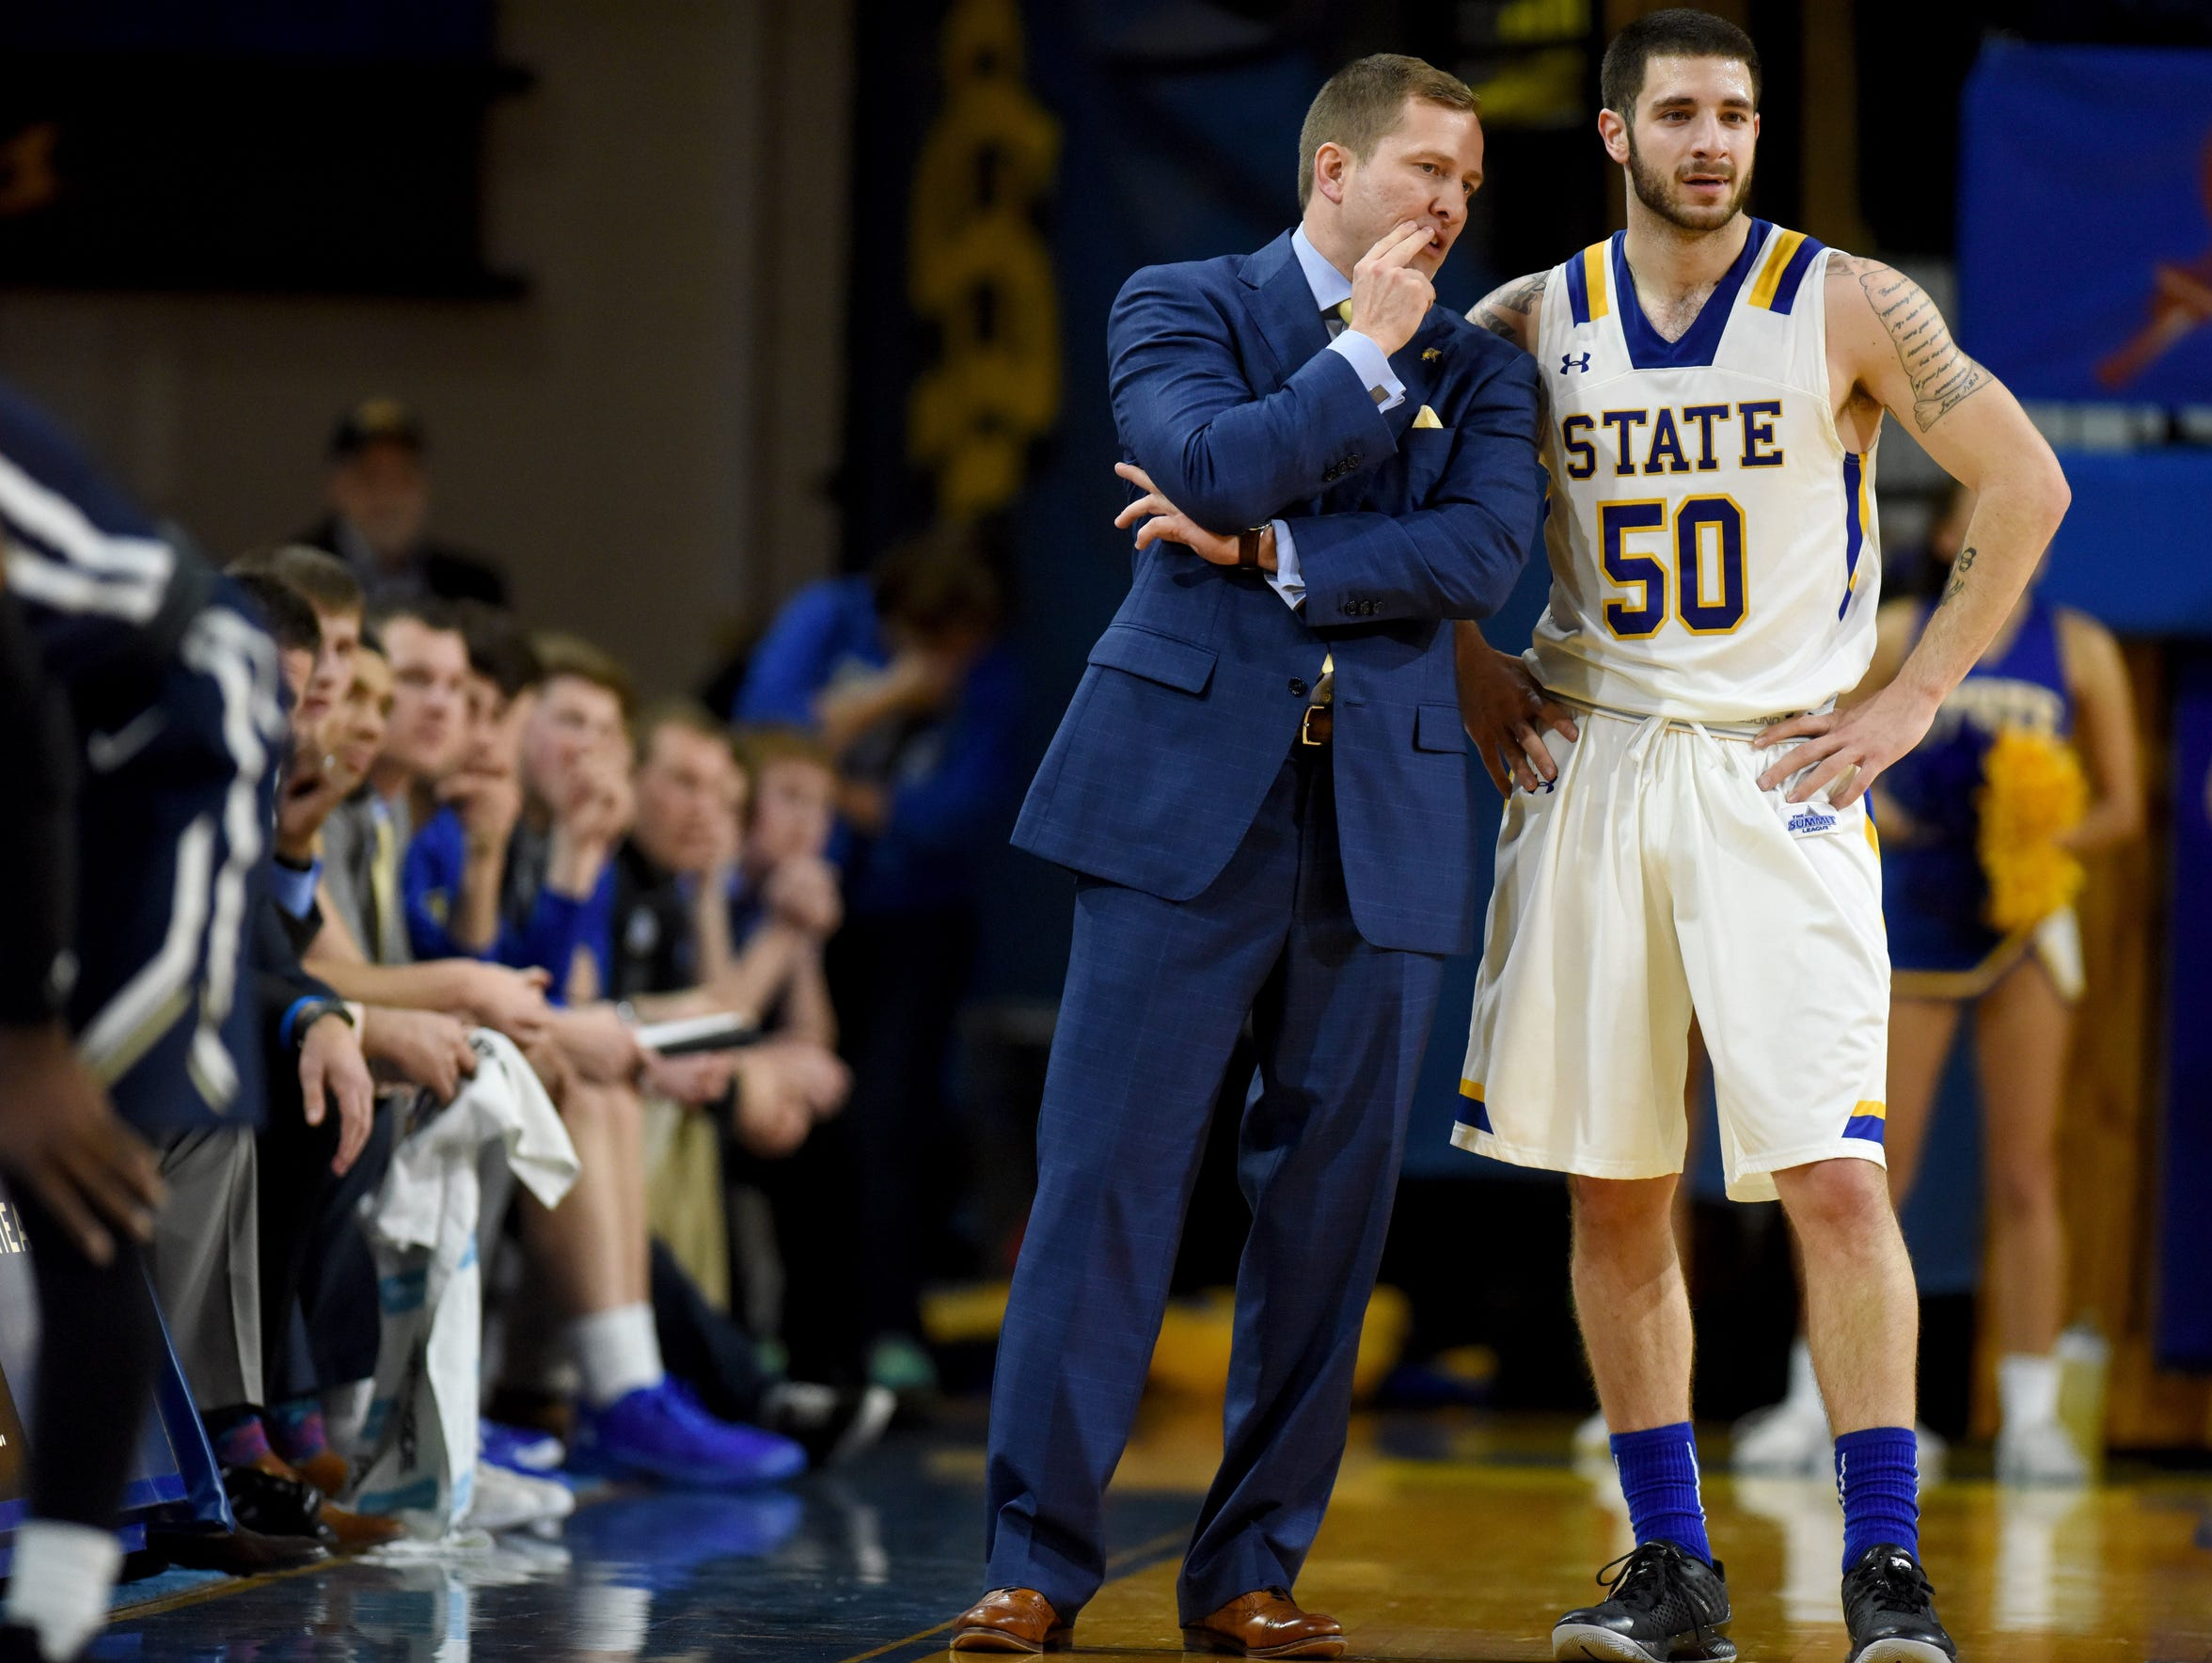 SDSU head men's basketball coach T.J. Otzelberger talks